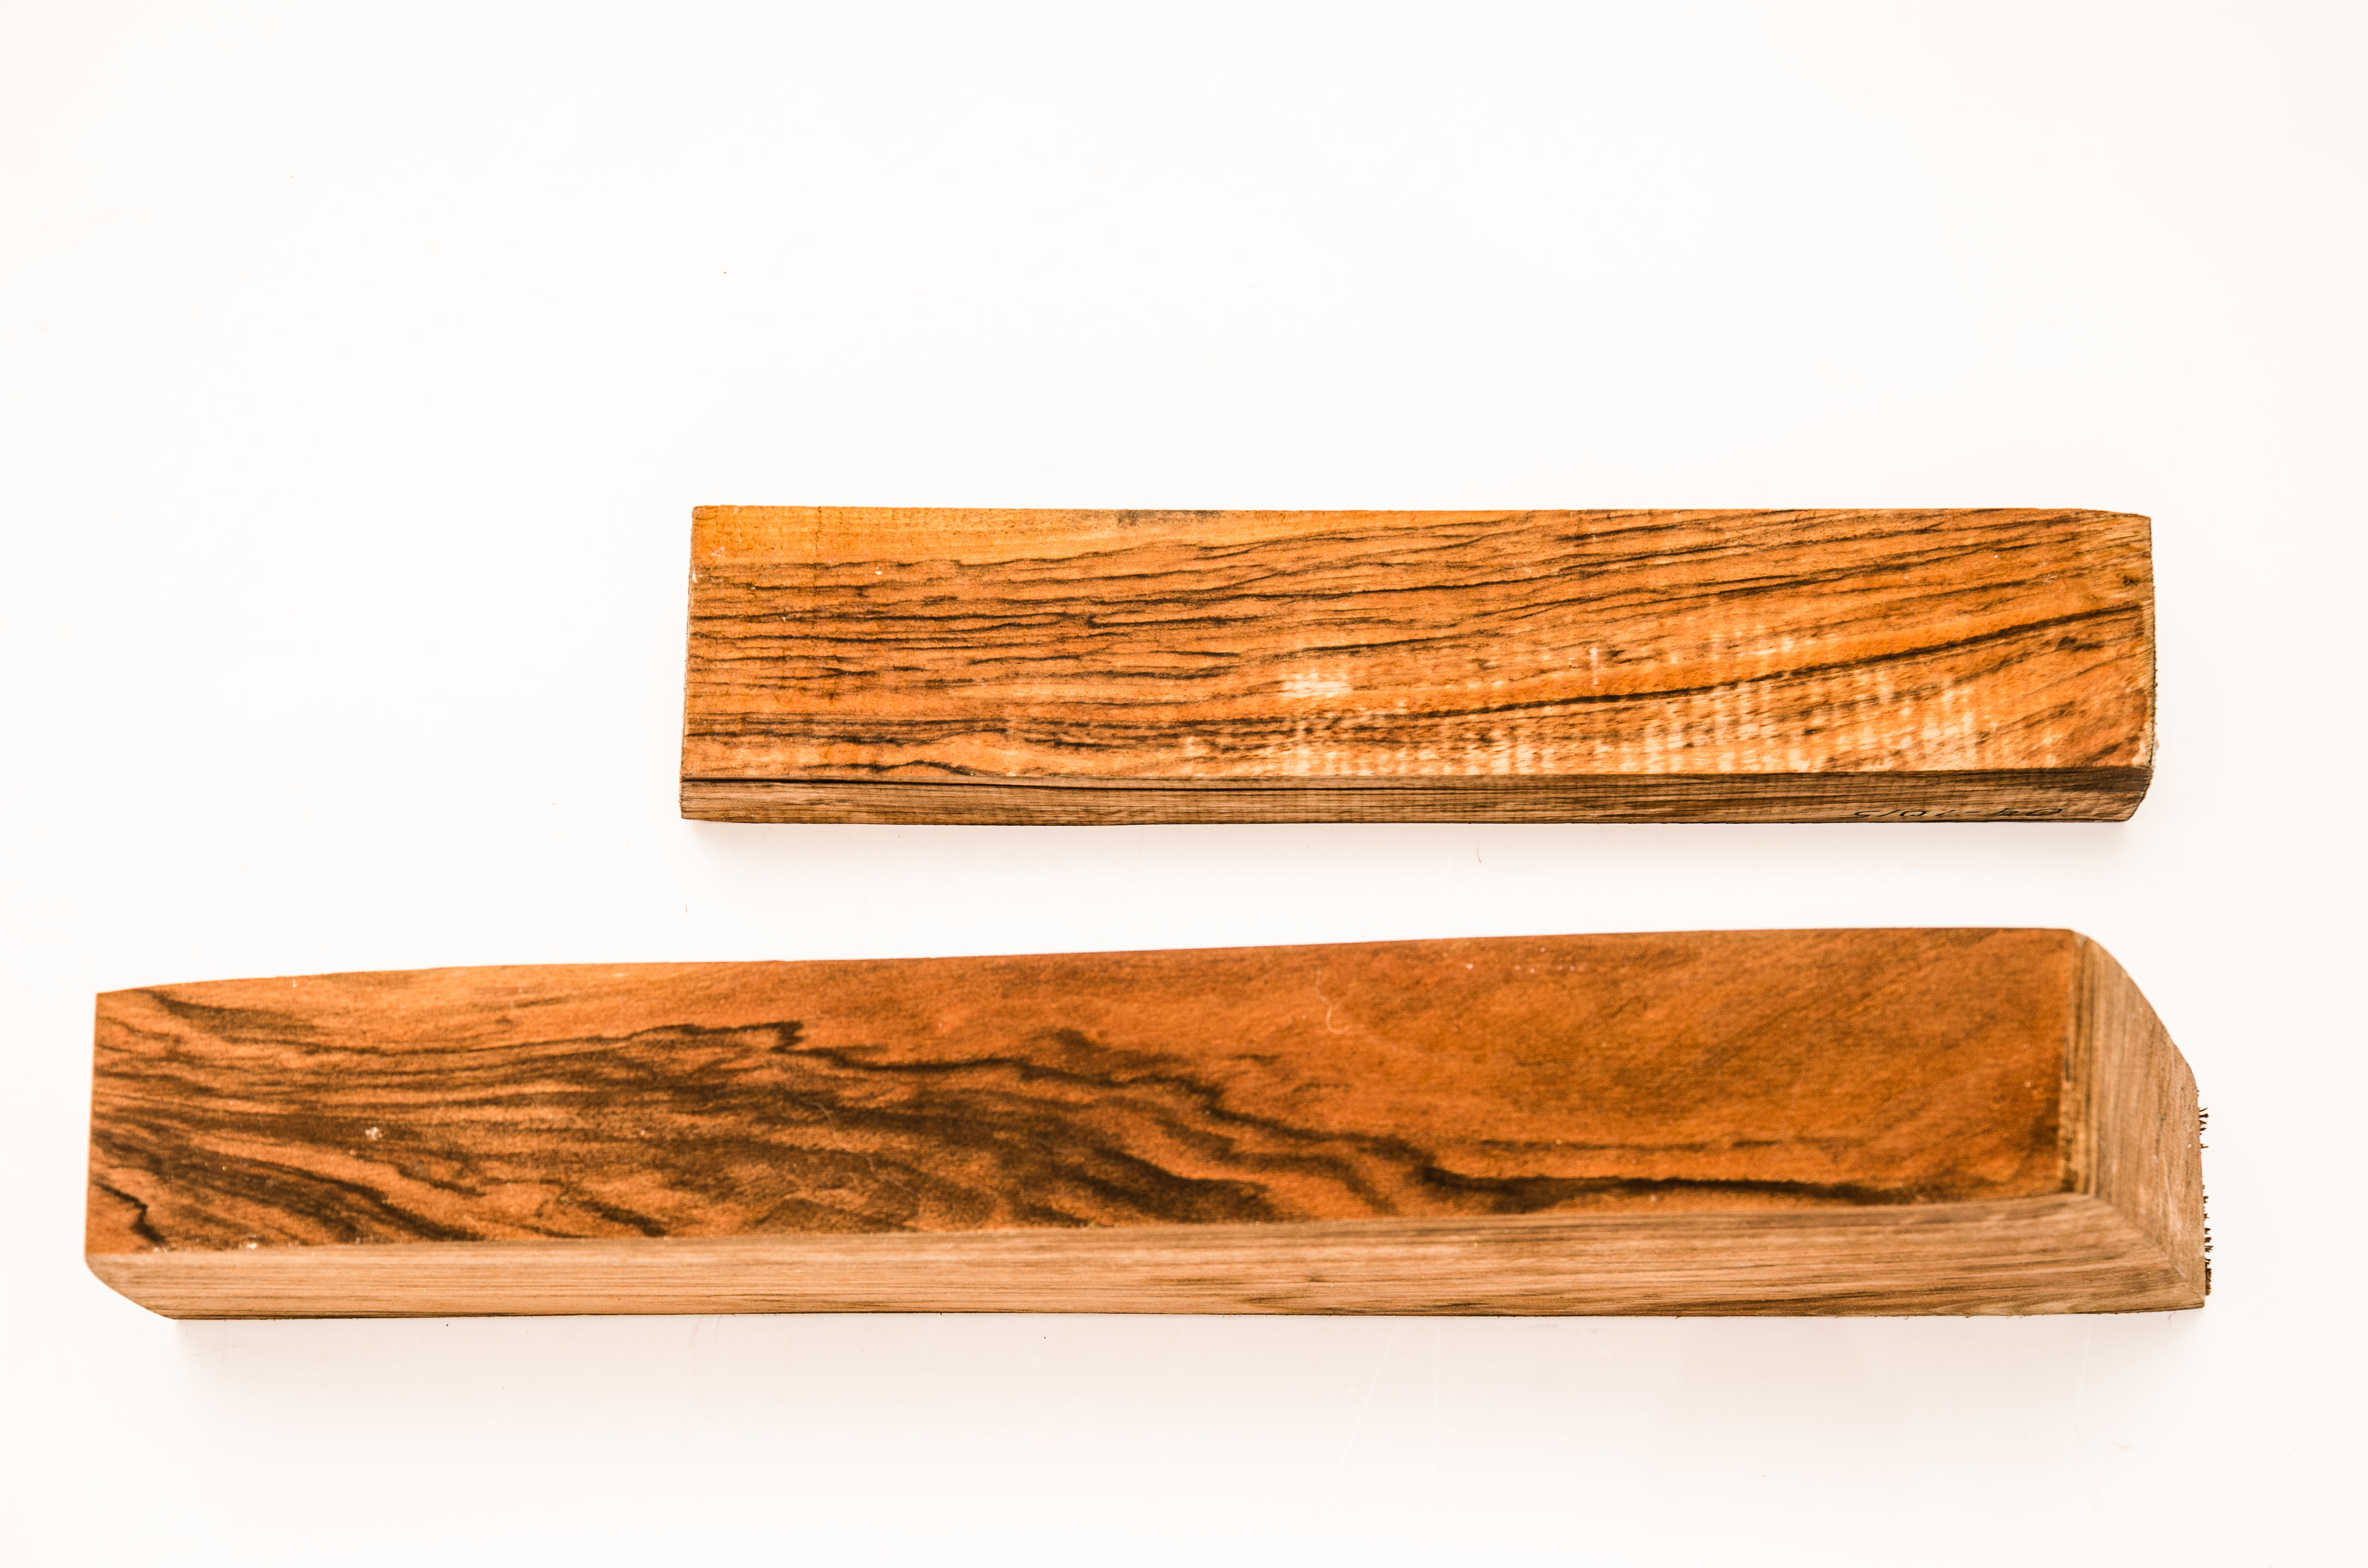 walnut_stock_blanks_for_guns_and_rifles-0372